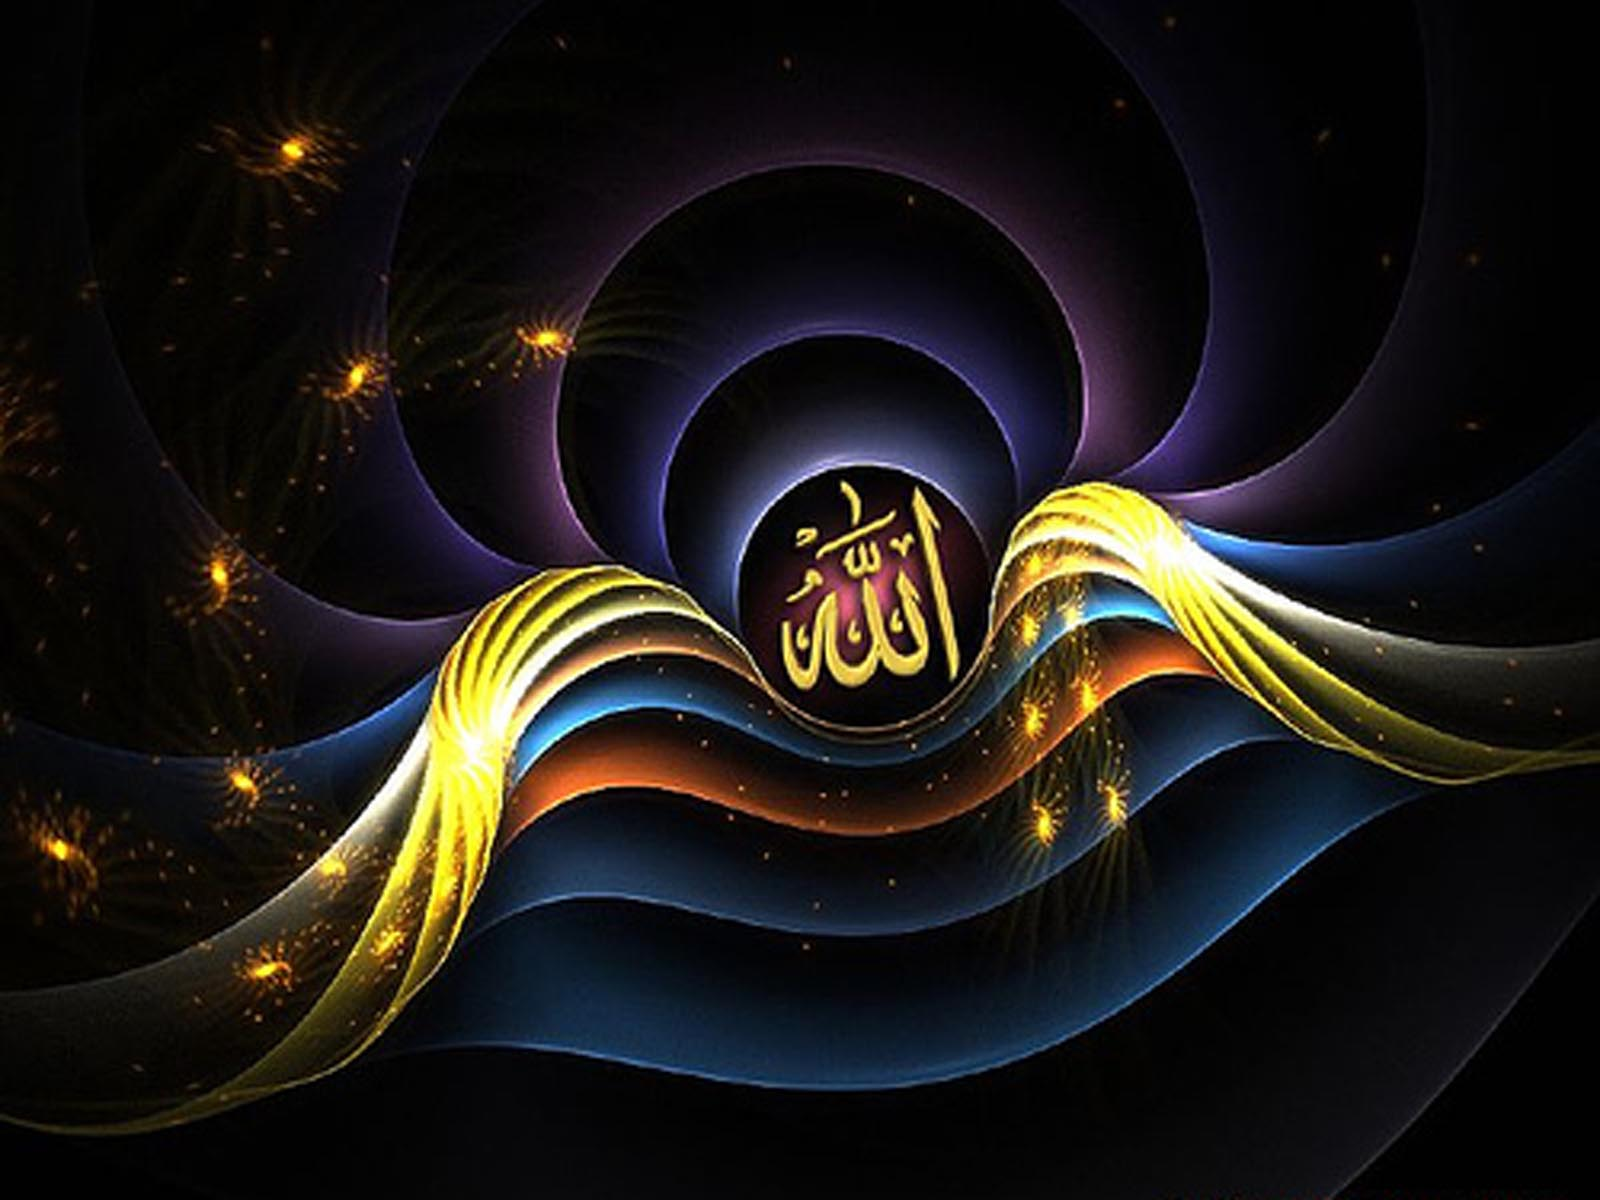 islamic wallpapers: ALLAHalll name wallpapers